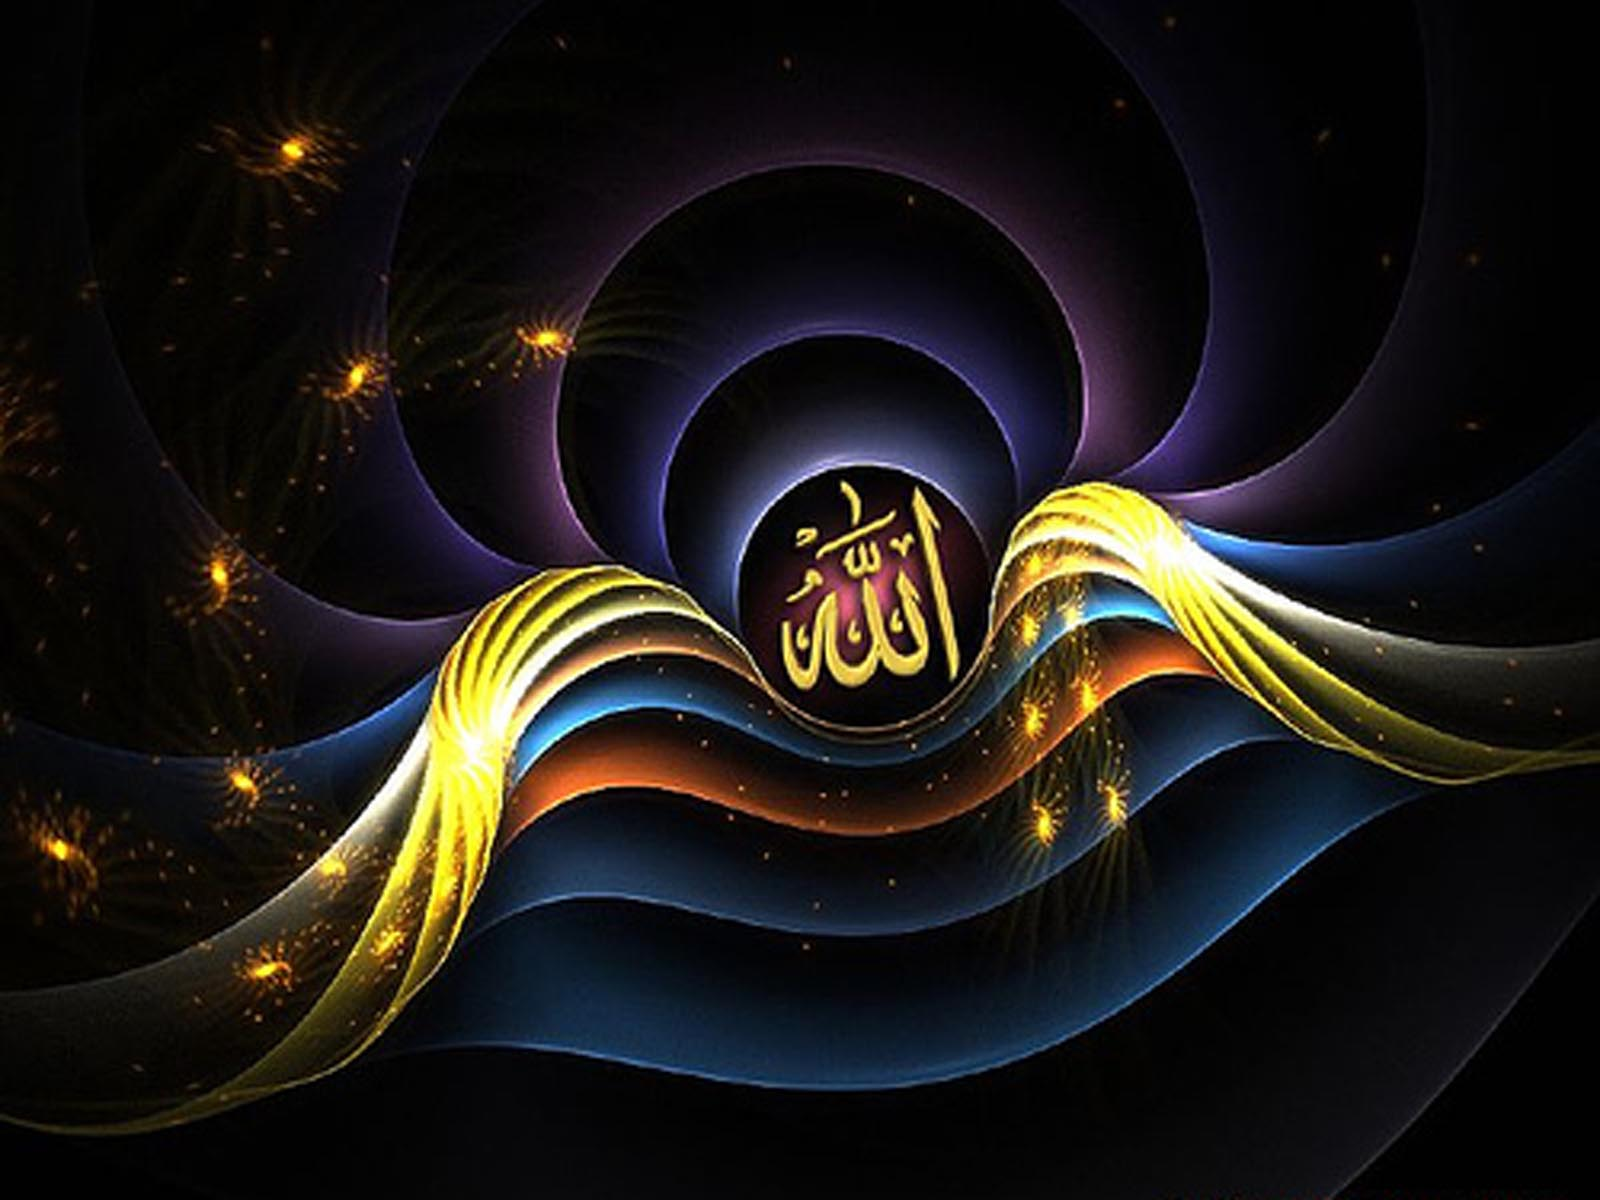 islamic wallpapers: ALLAHalll name wallpapers